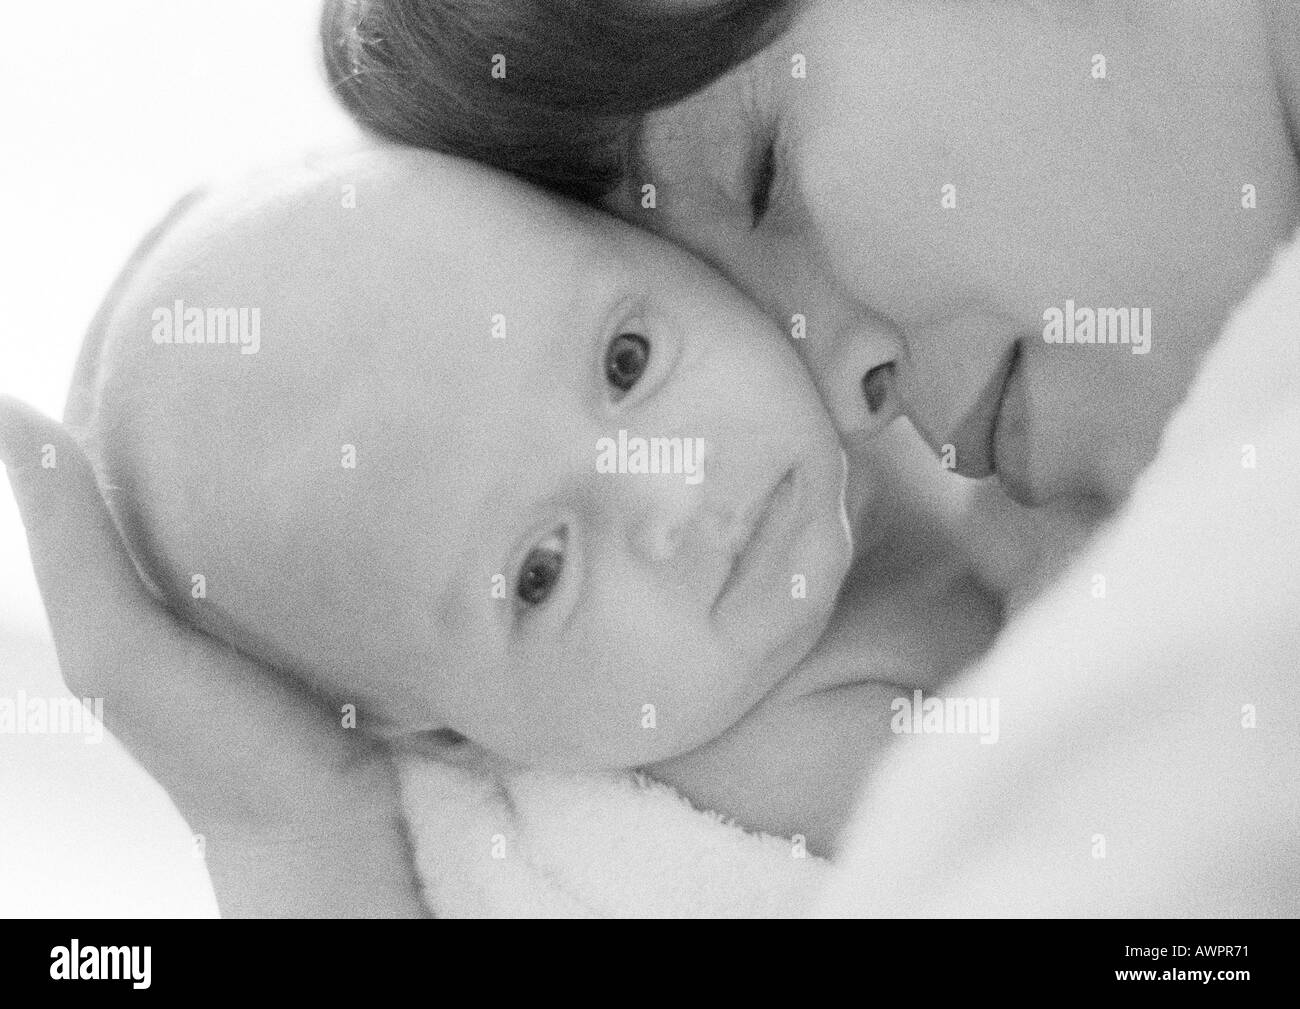 Mother holding infant against face, close-up, b&w - Stock Image